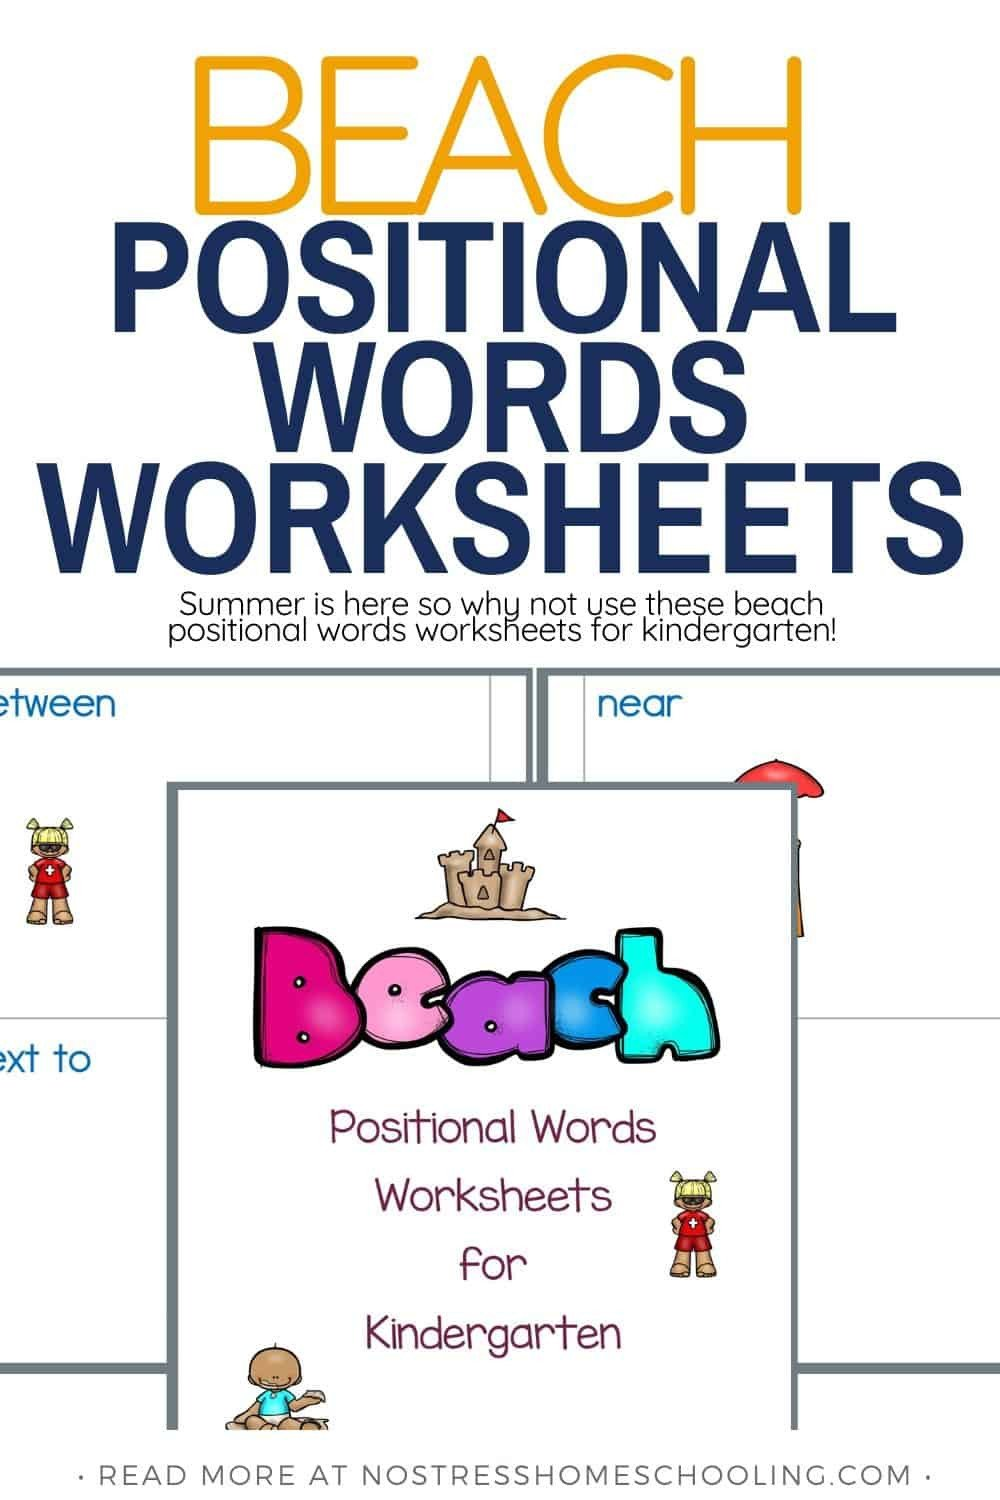 Positional Word Worksheets Beach Positional Words Worksheets for Kindergarten